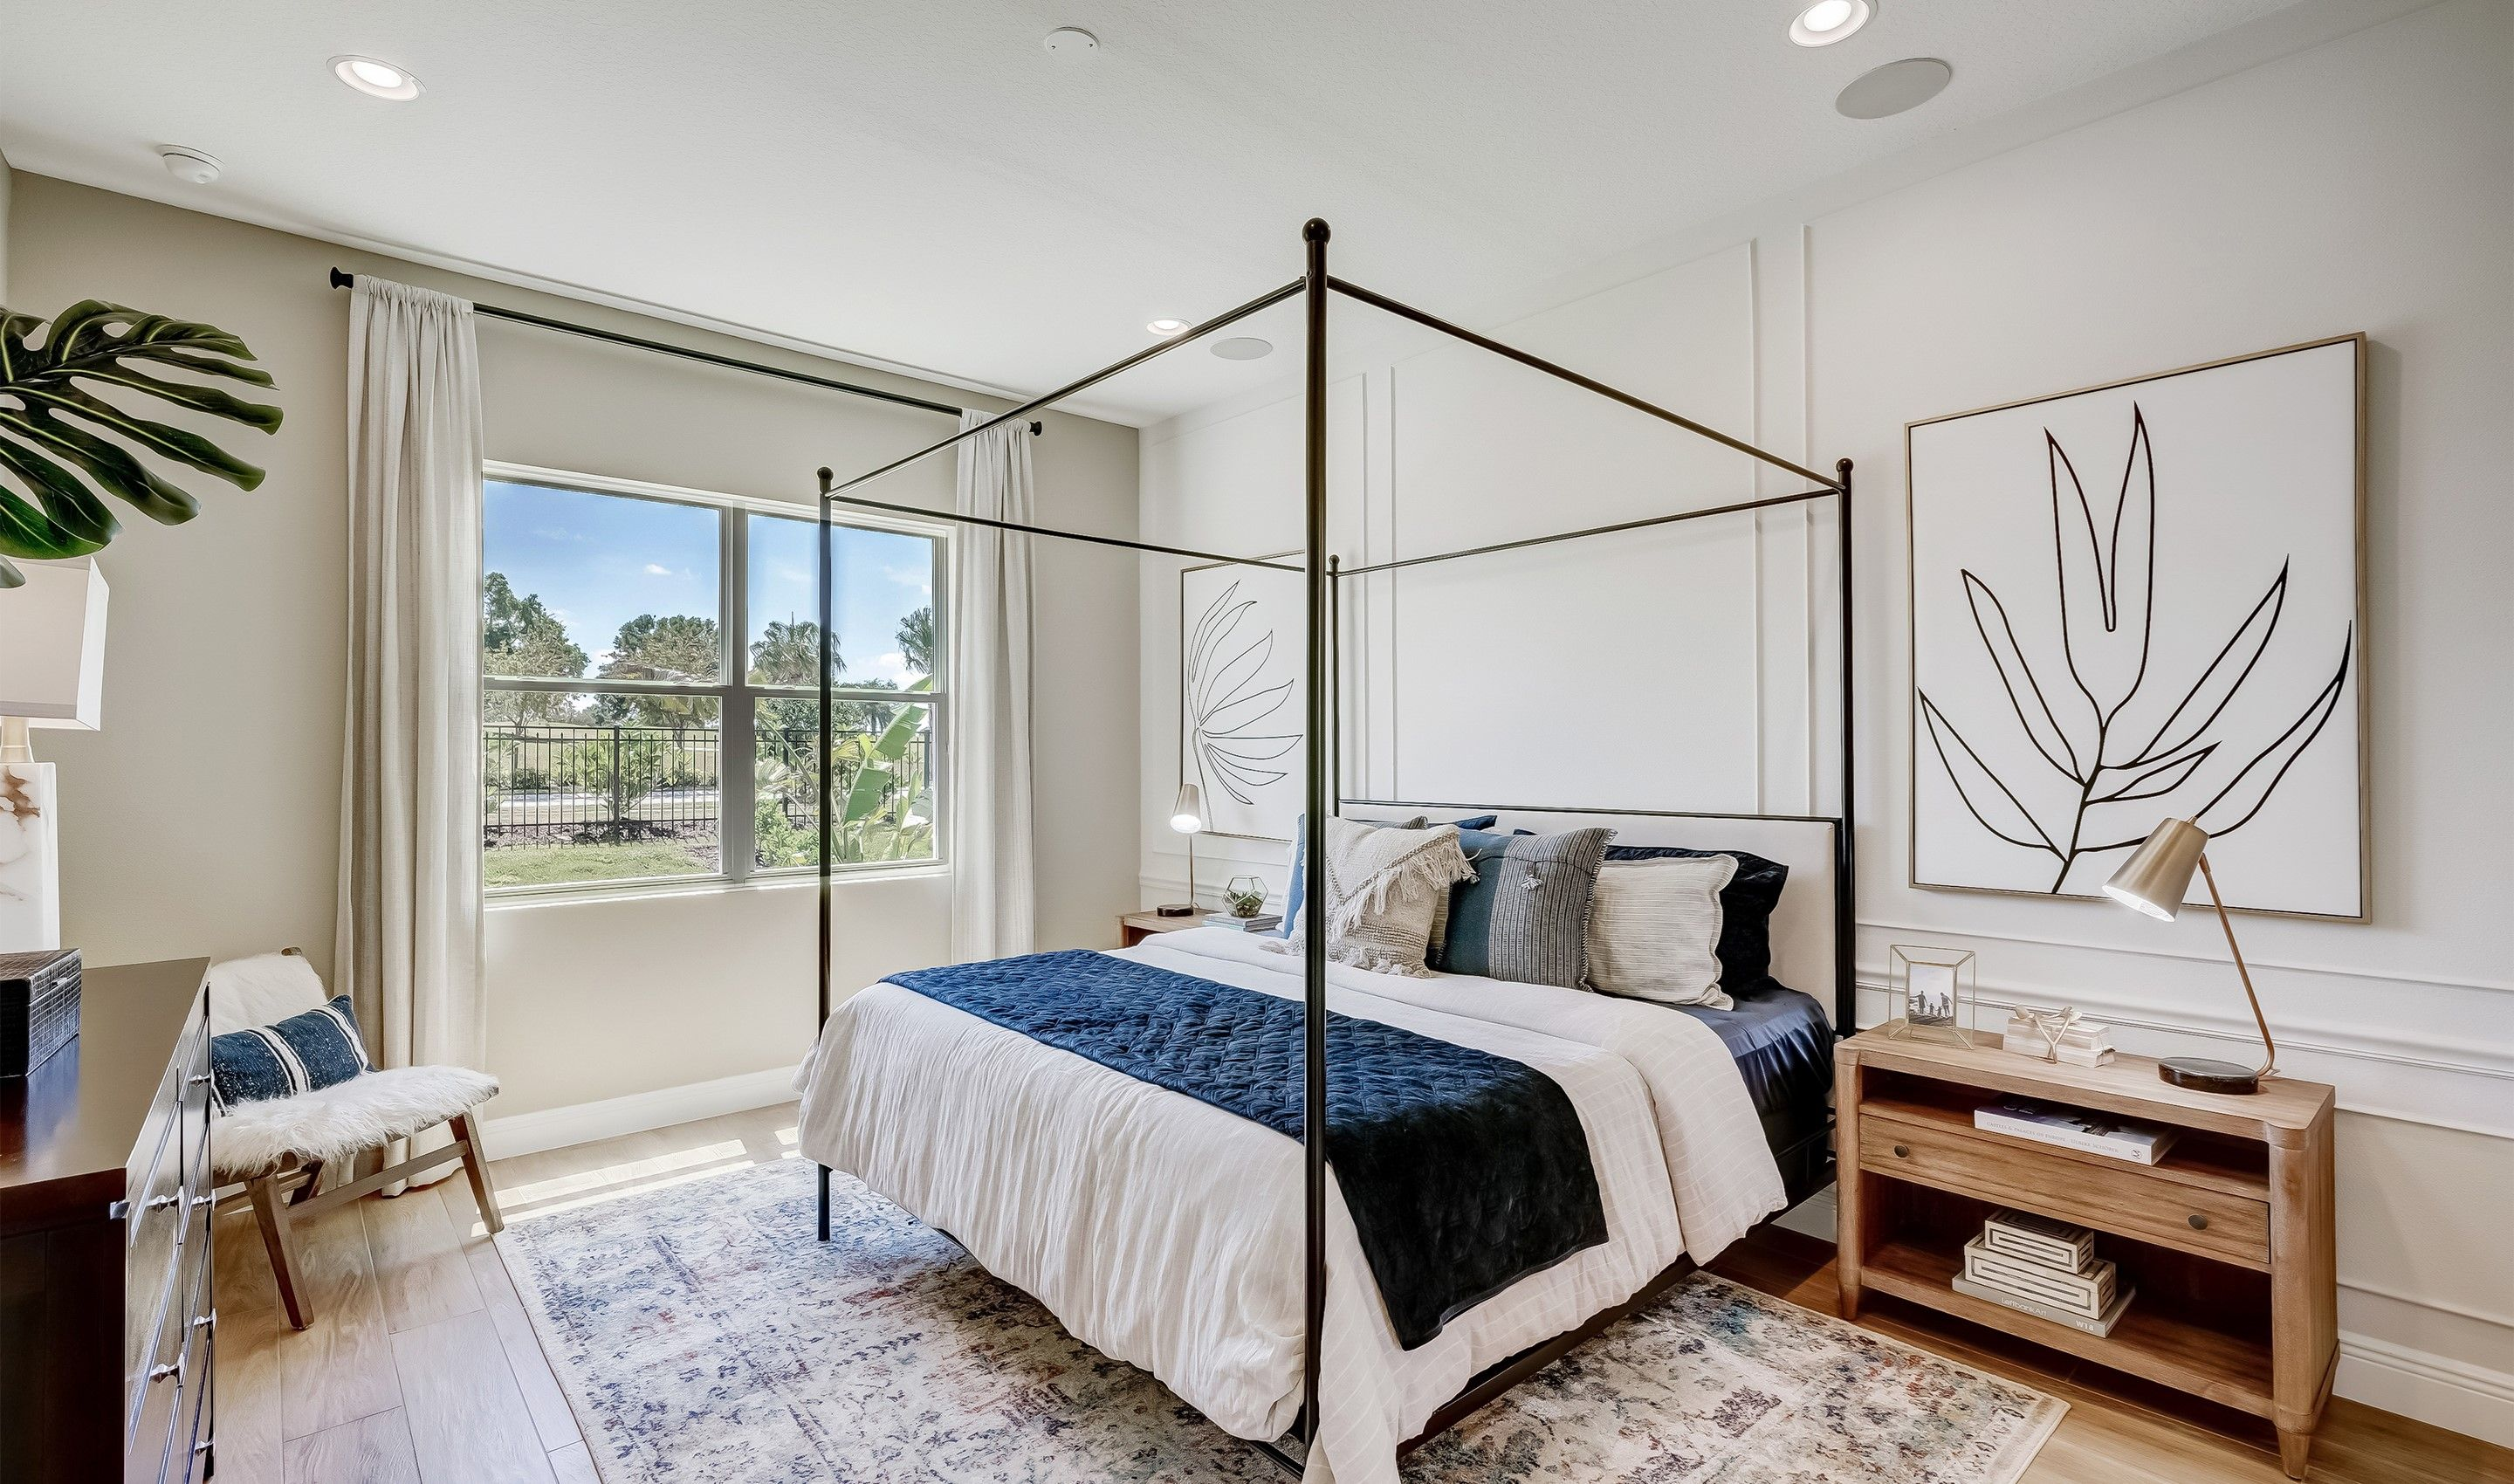 Bedroom featured in the Emerie By K. Hovnanian's® Four Seasons in Orlando, FL